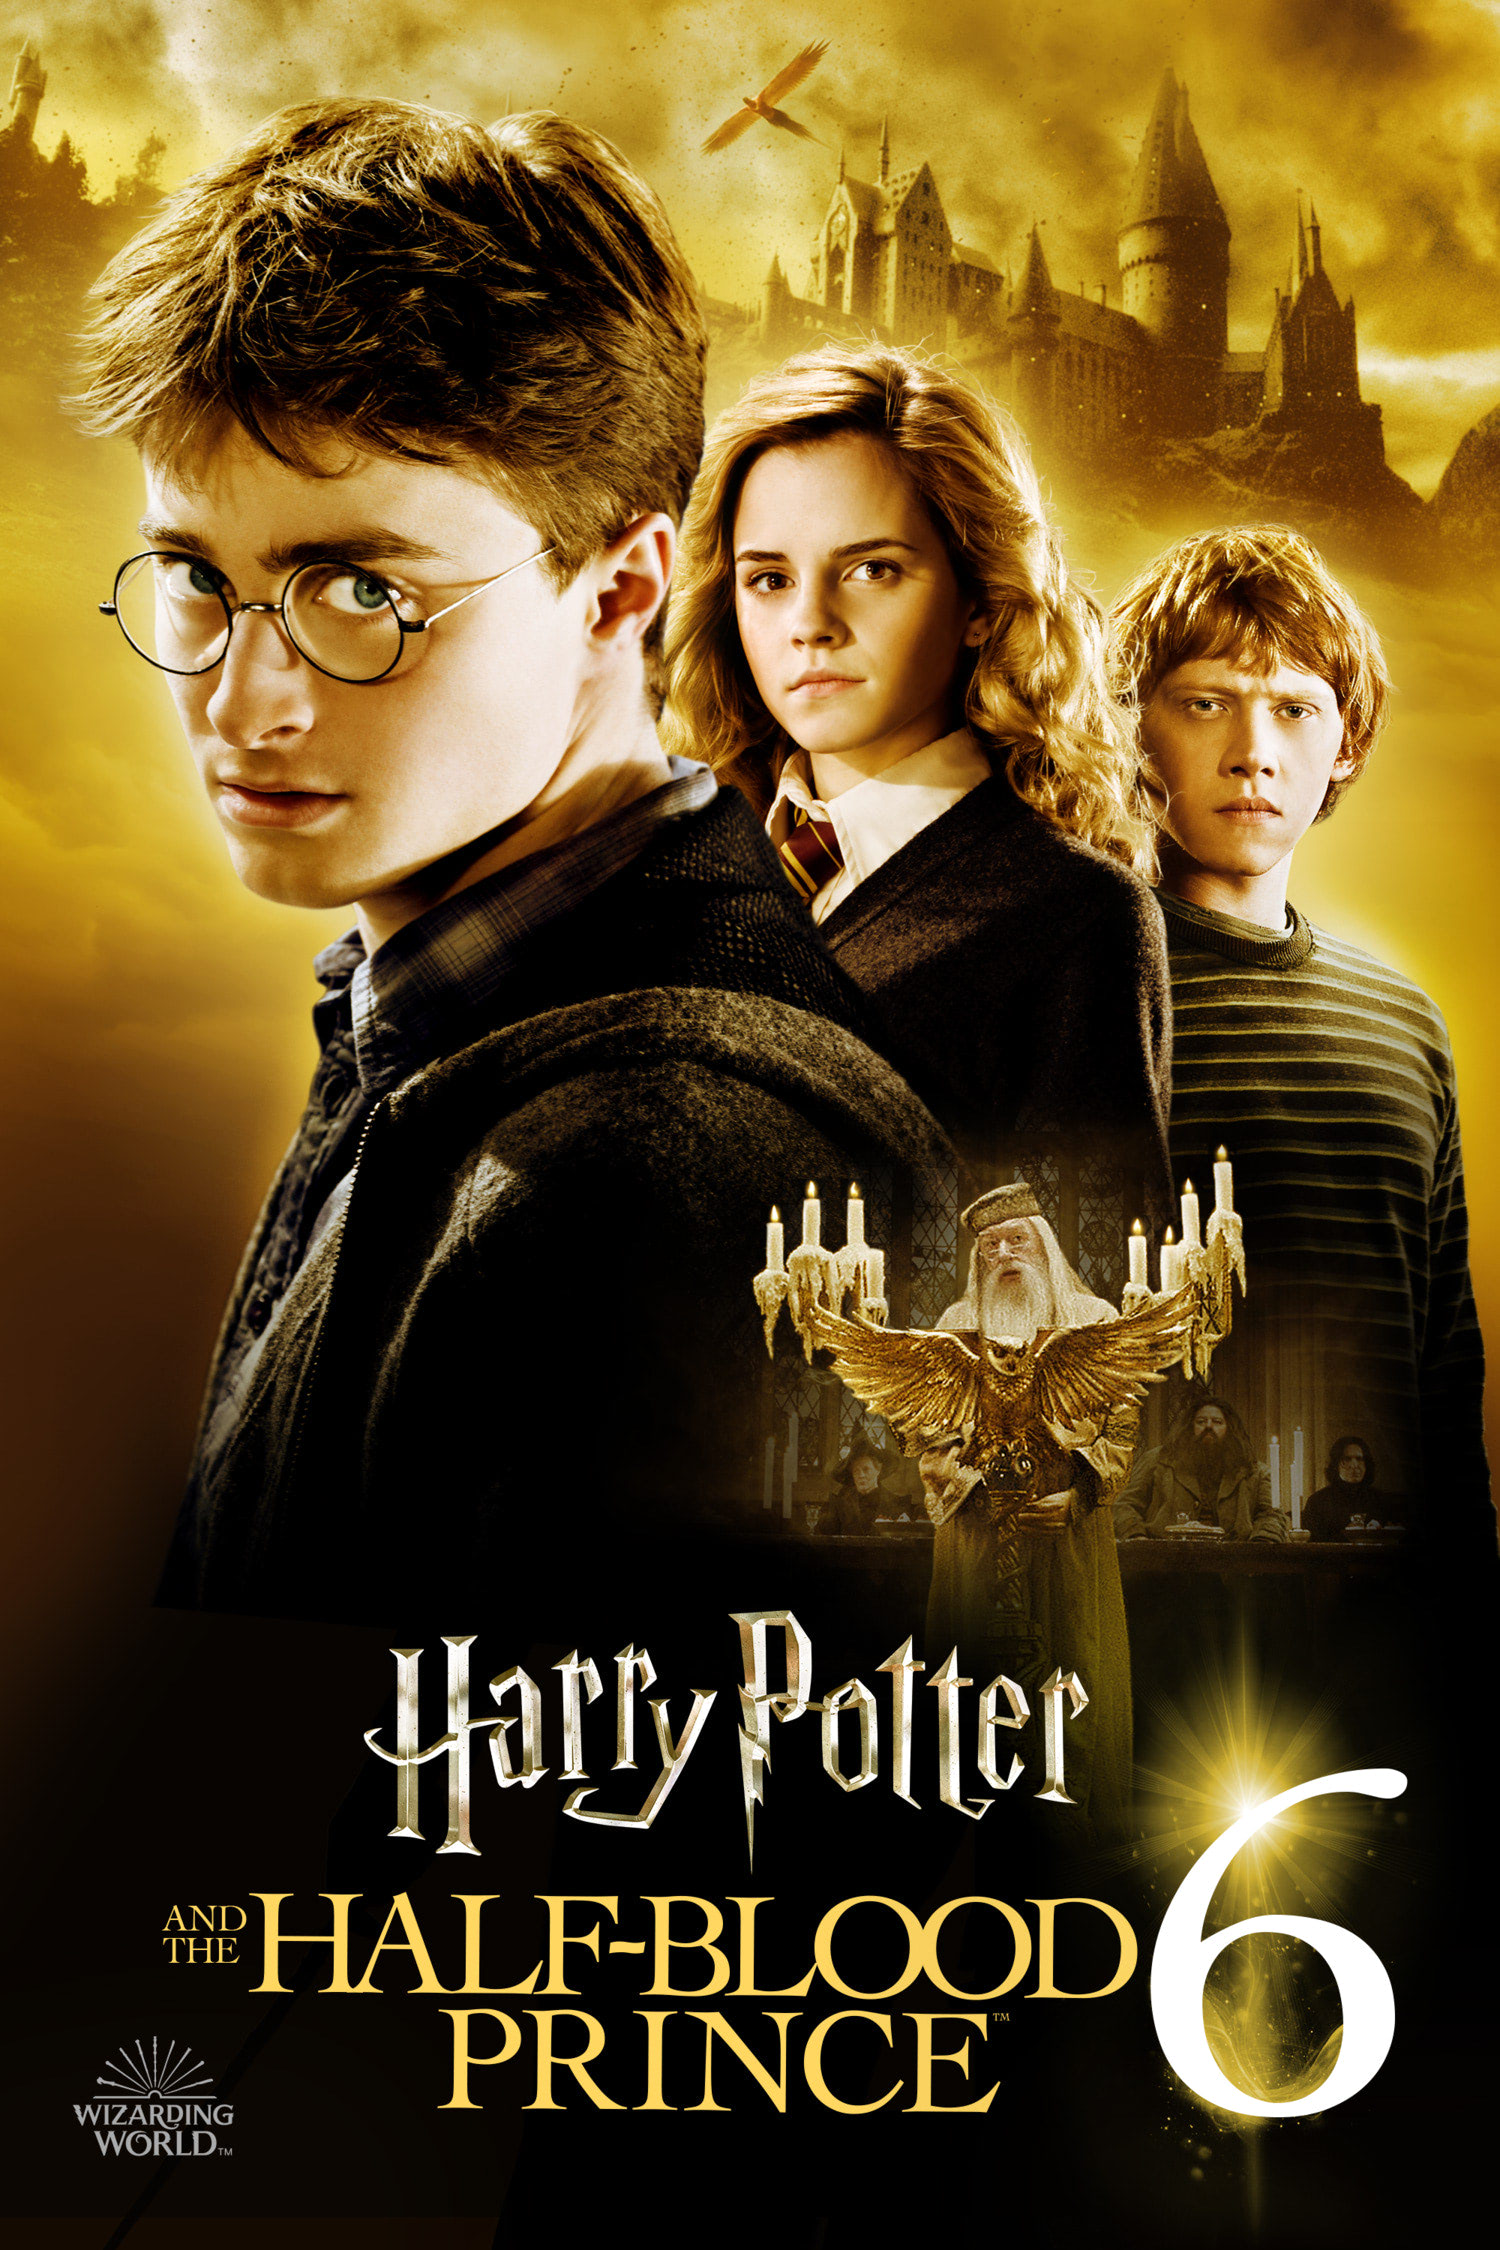 'Half-Blood Prince' Wizarding World poster